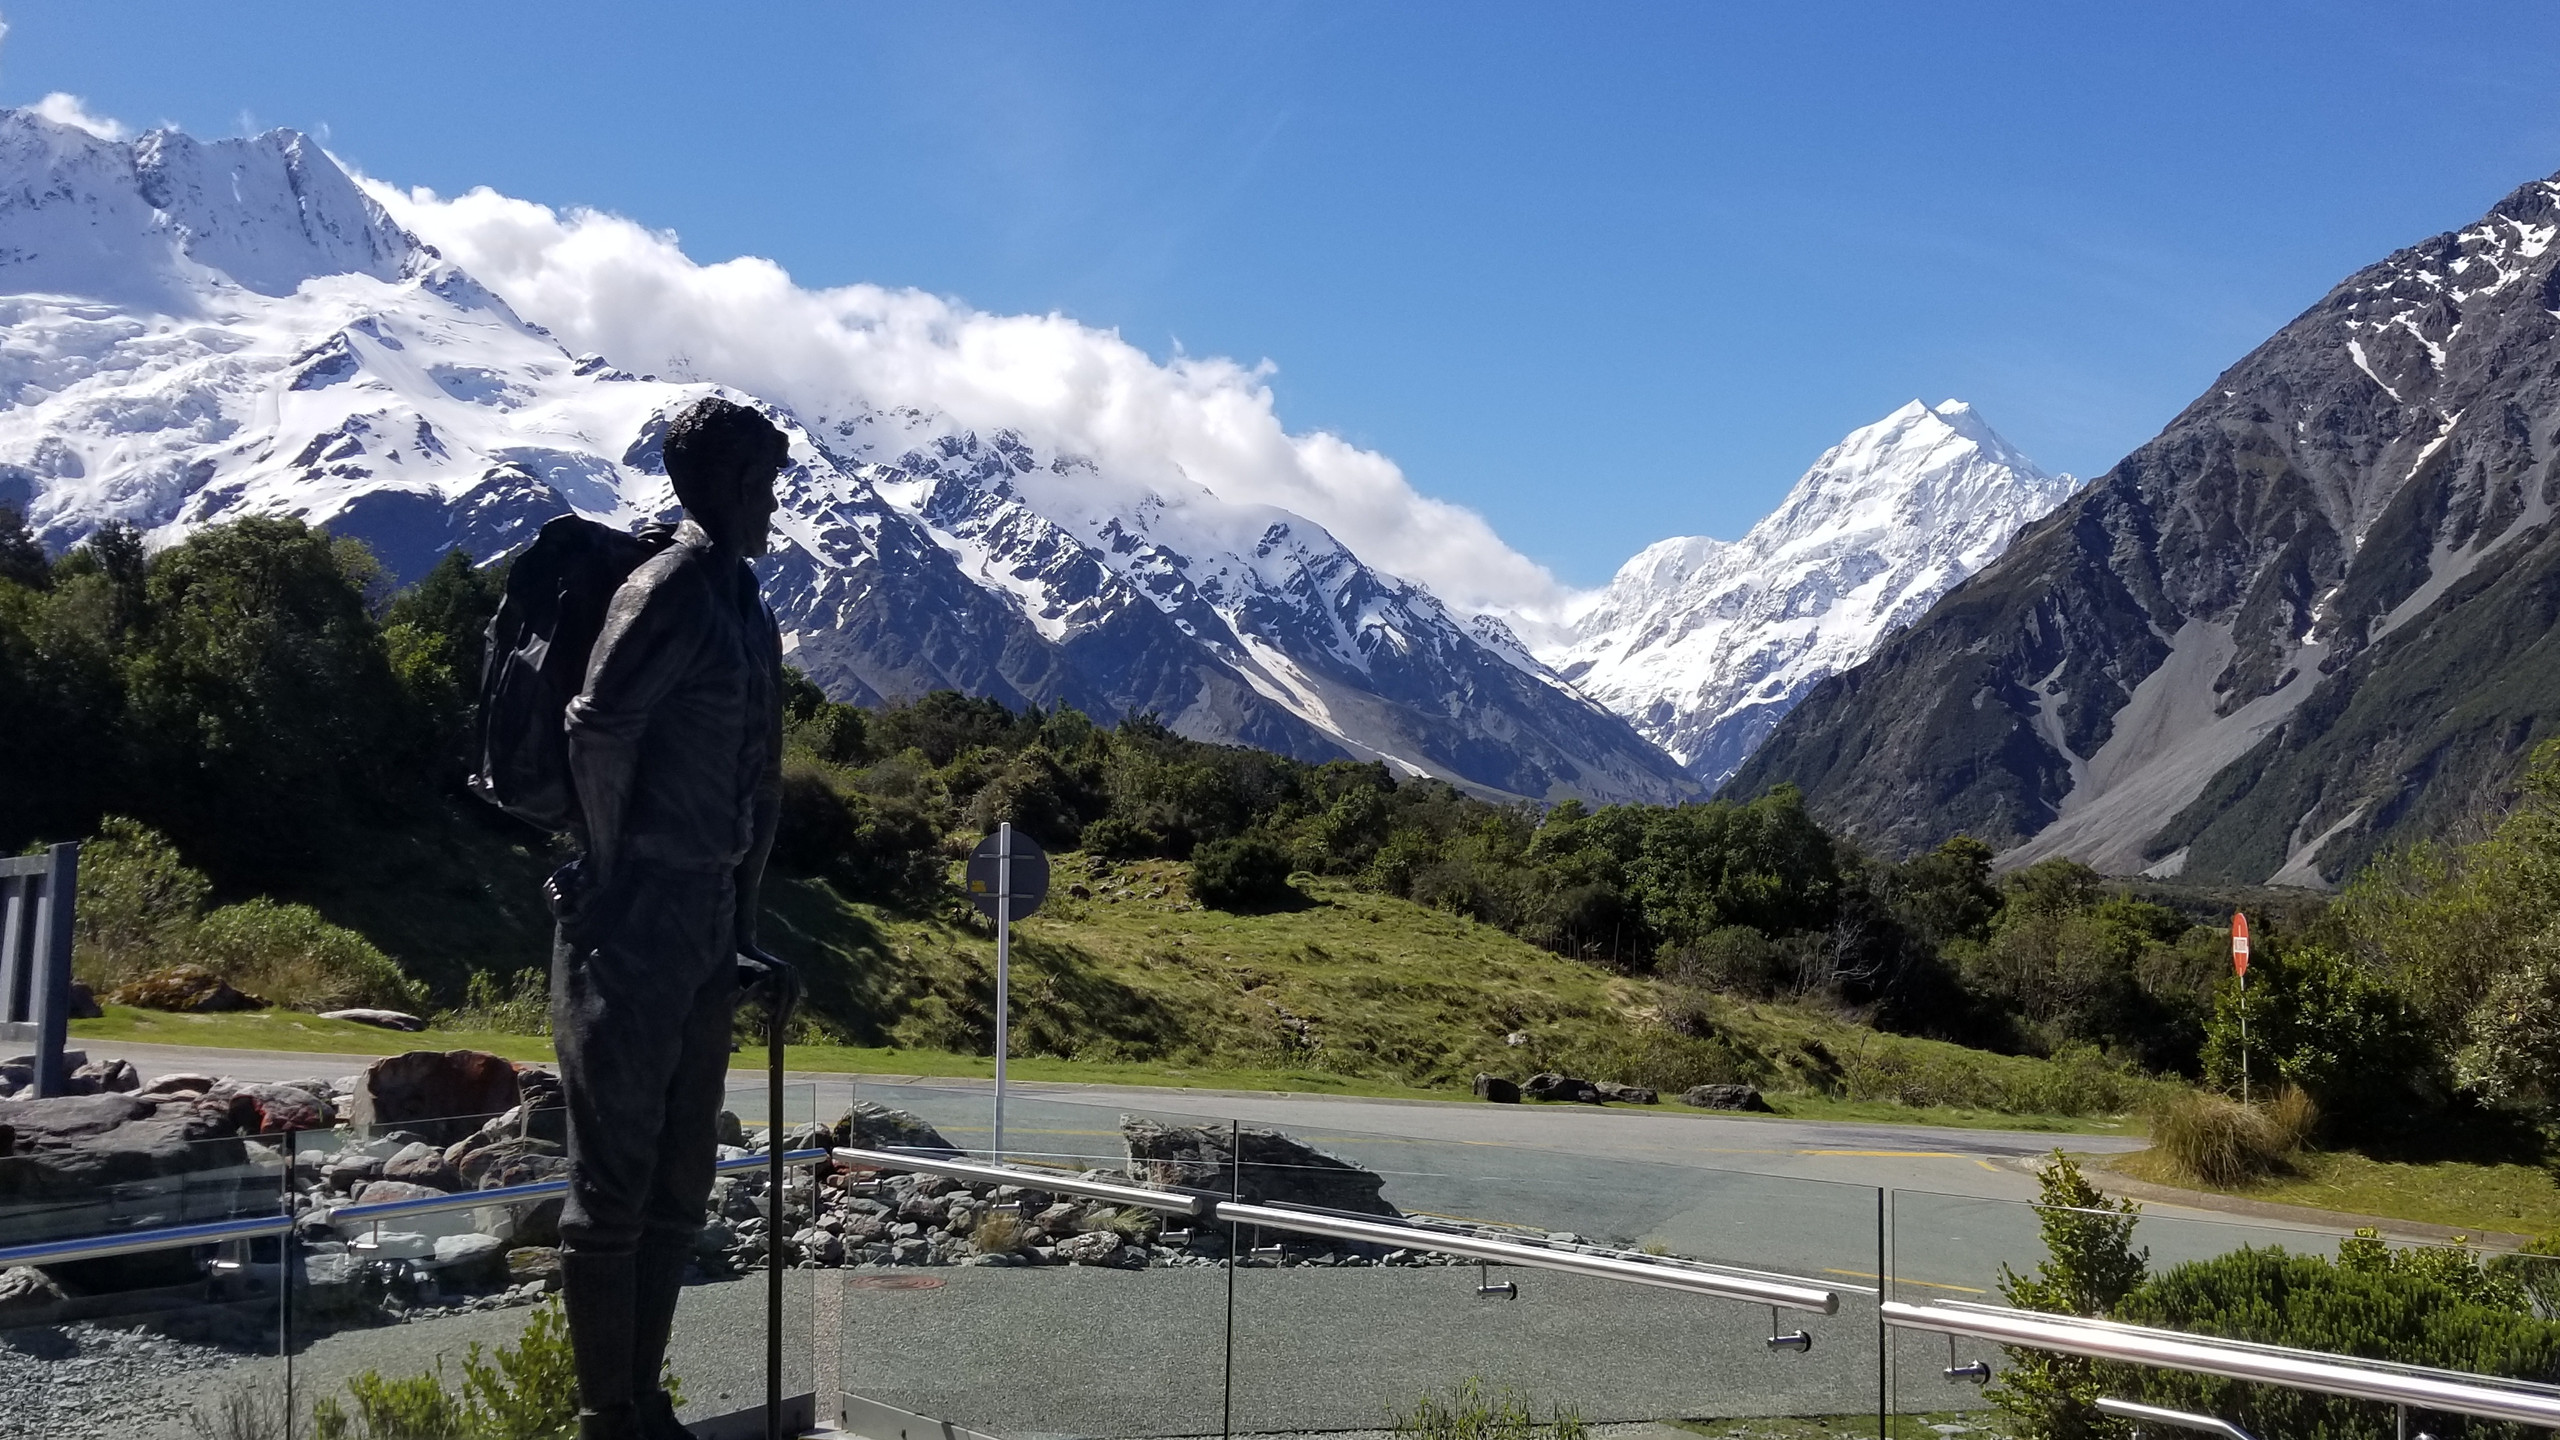 Sir Edmund Hillary monument, Mount Cook, New Zealand activities, New Zealand tours